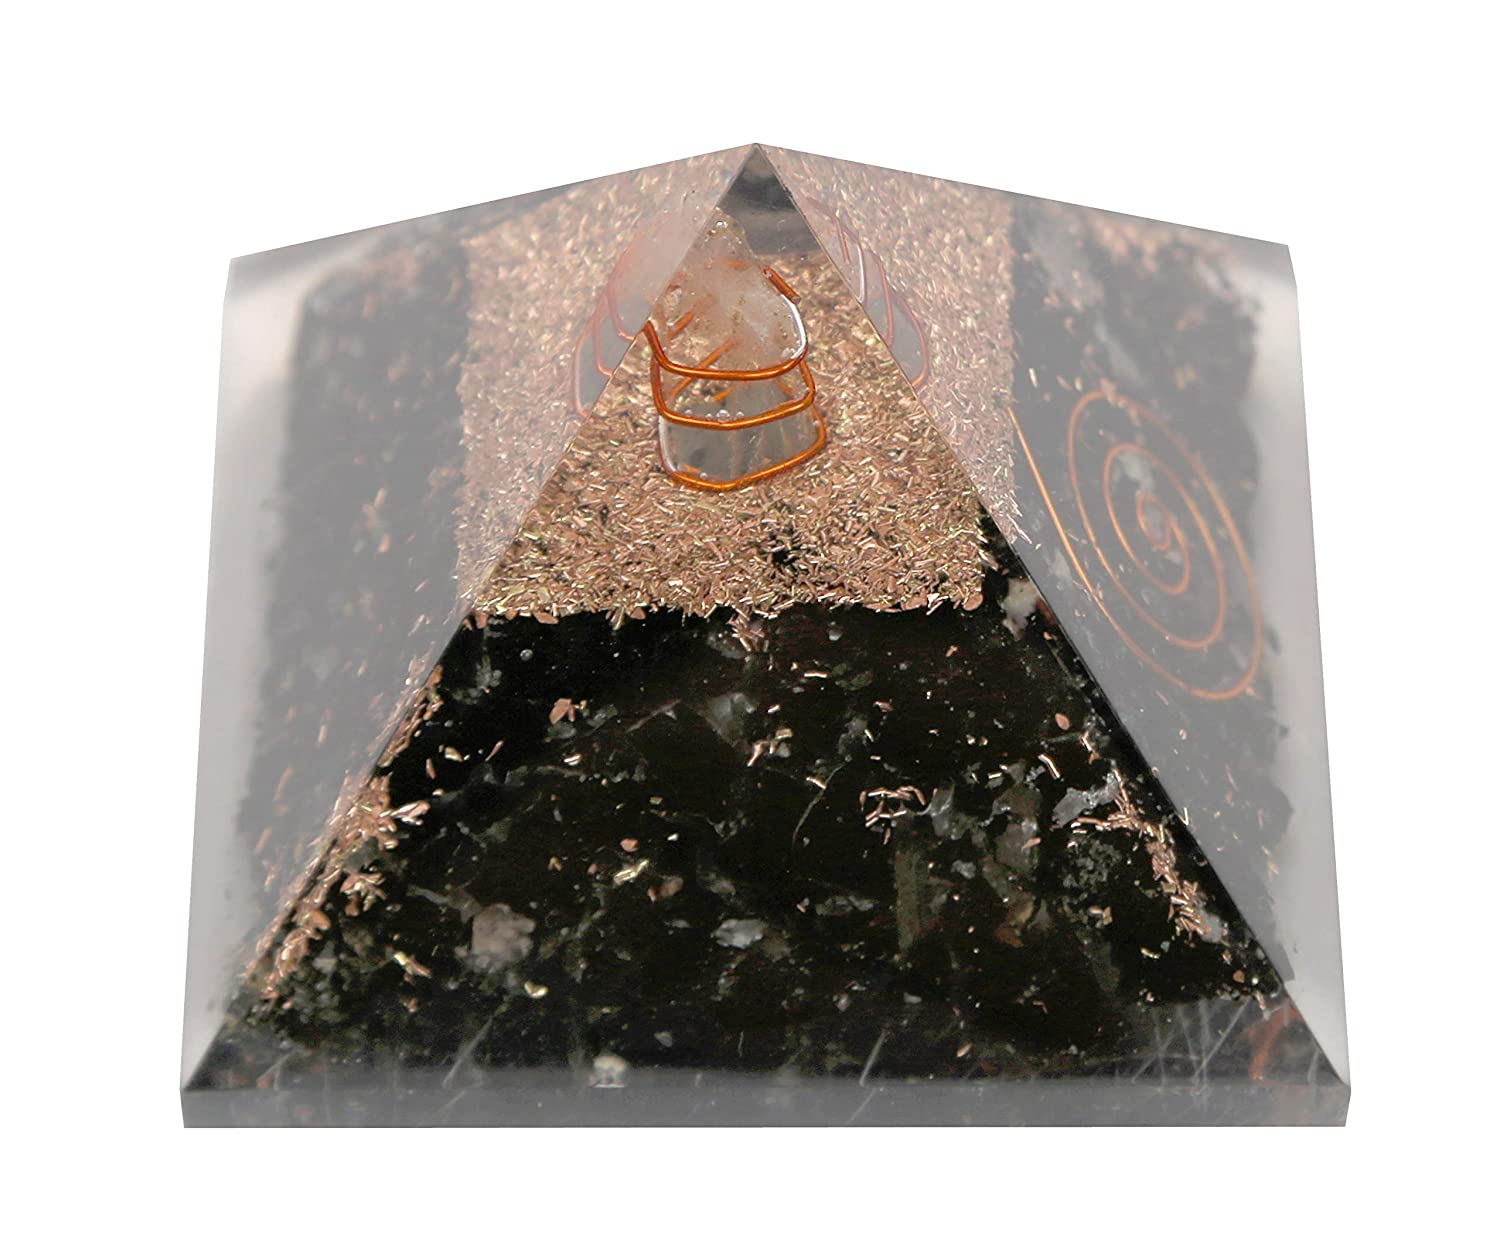 Aatm Healing Gemstone Black Tourmaline Flat Orgone Stone for Positivity and Gift